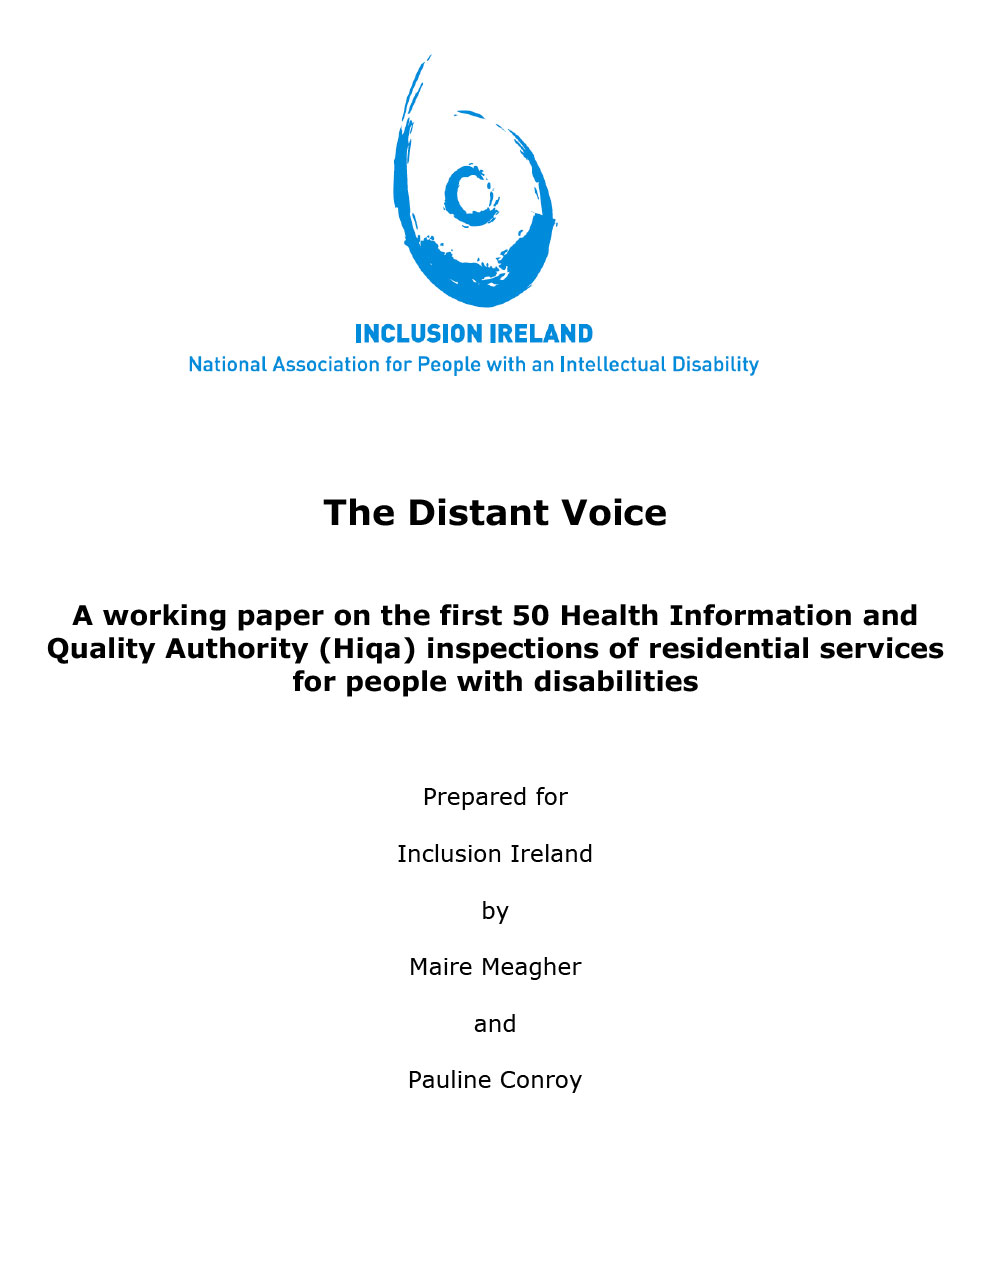 The Distant Voice – Analysis of HIQA Inspections